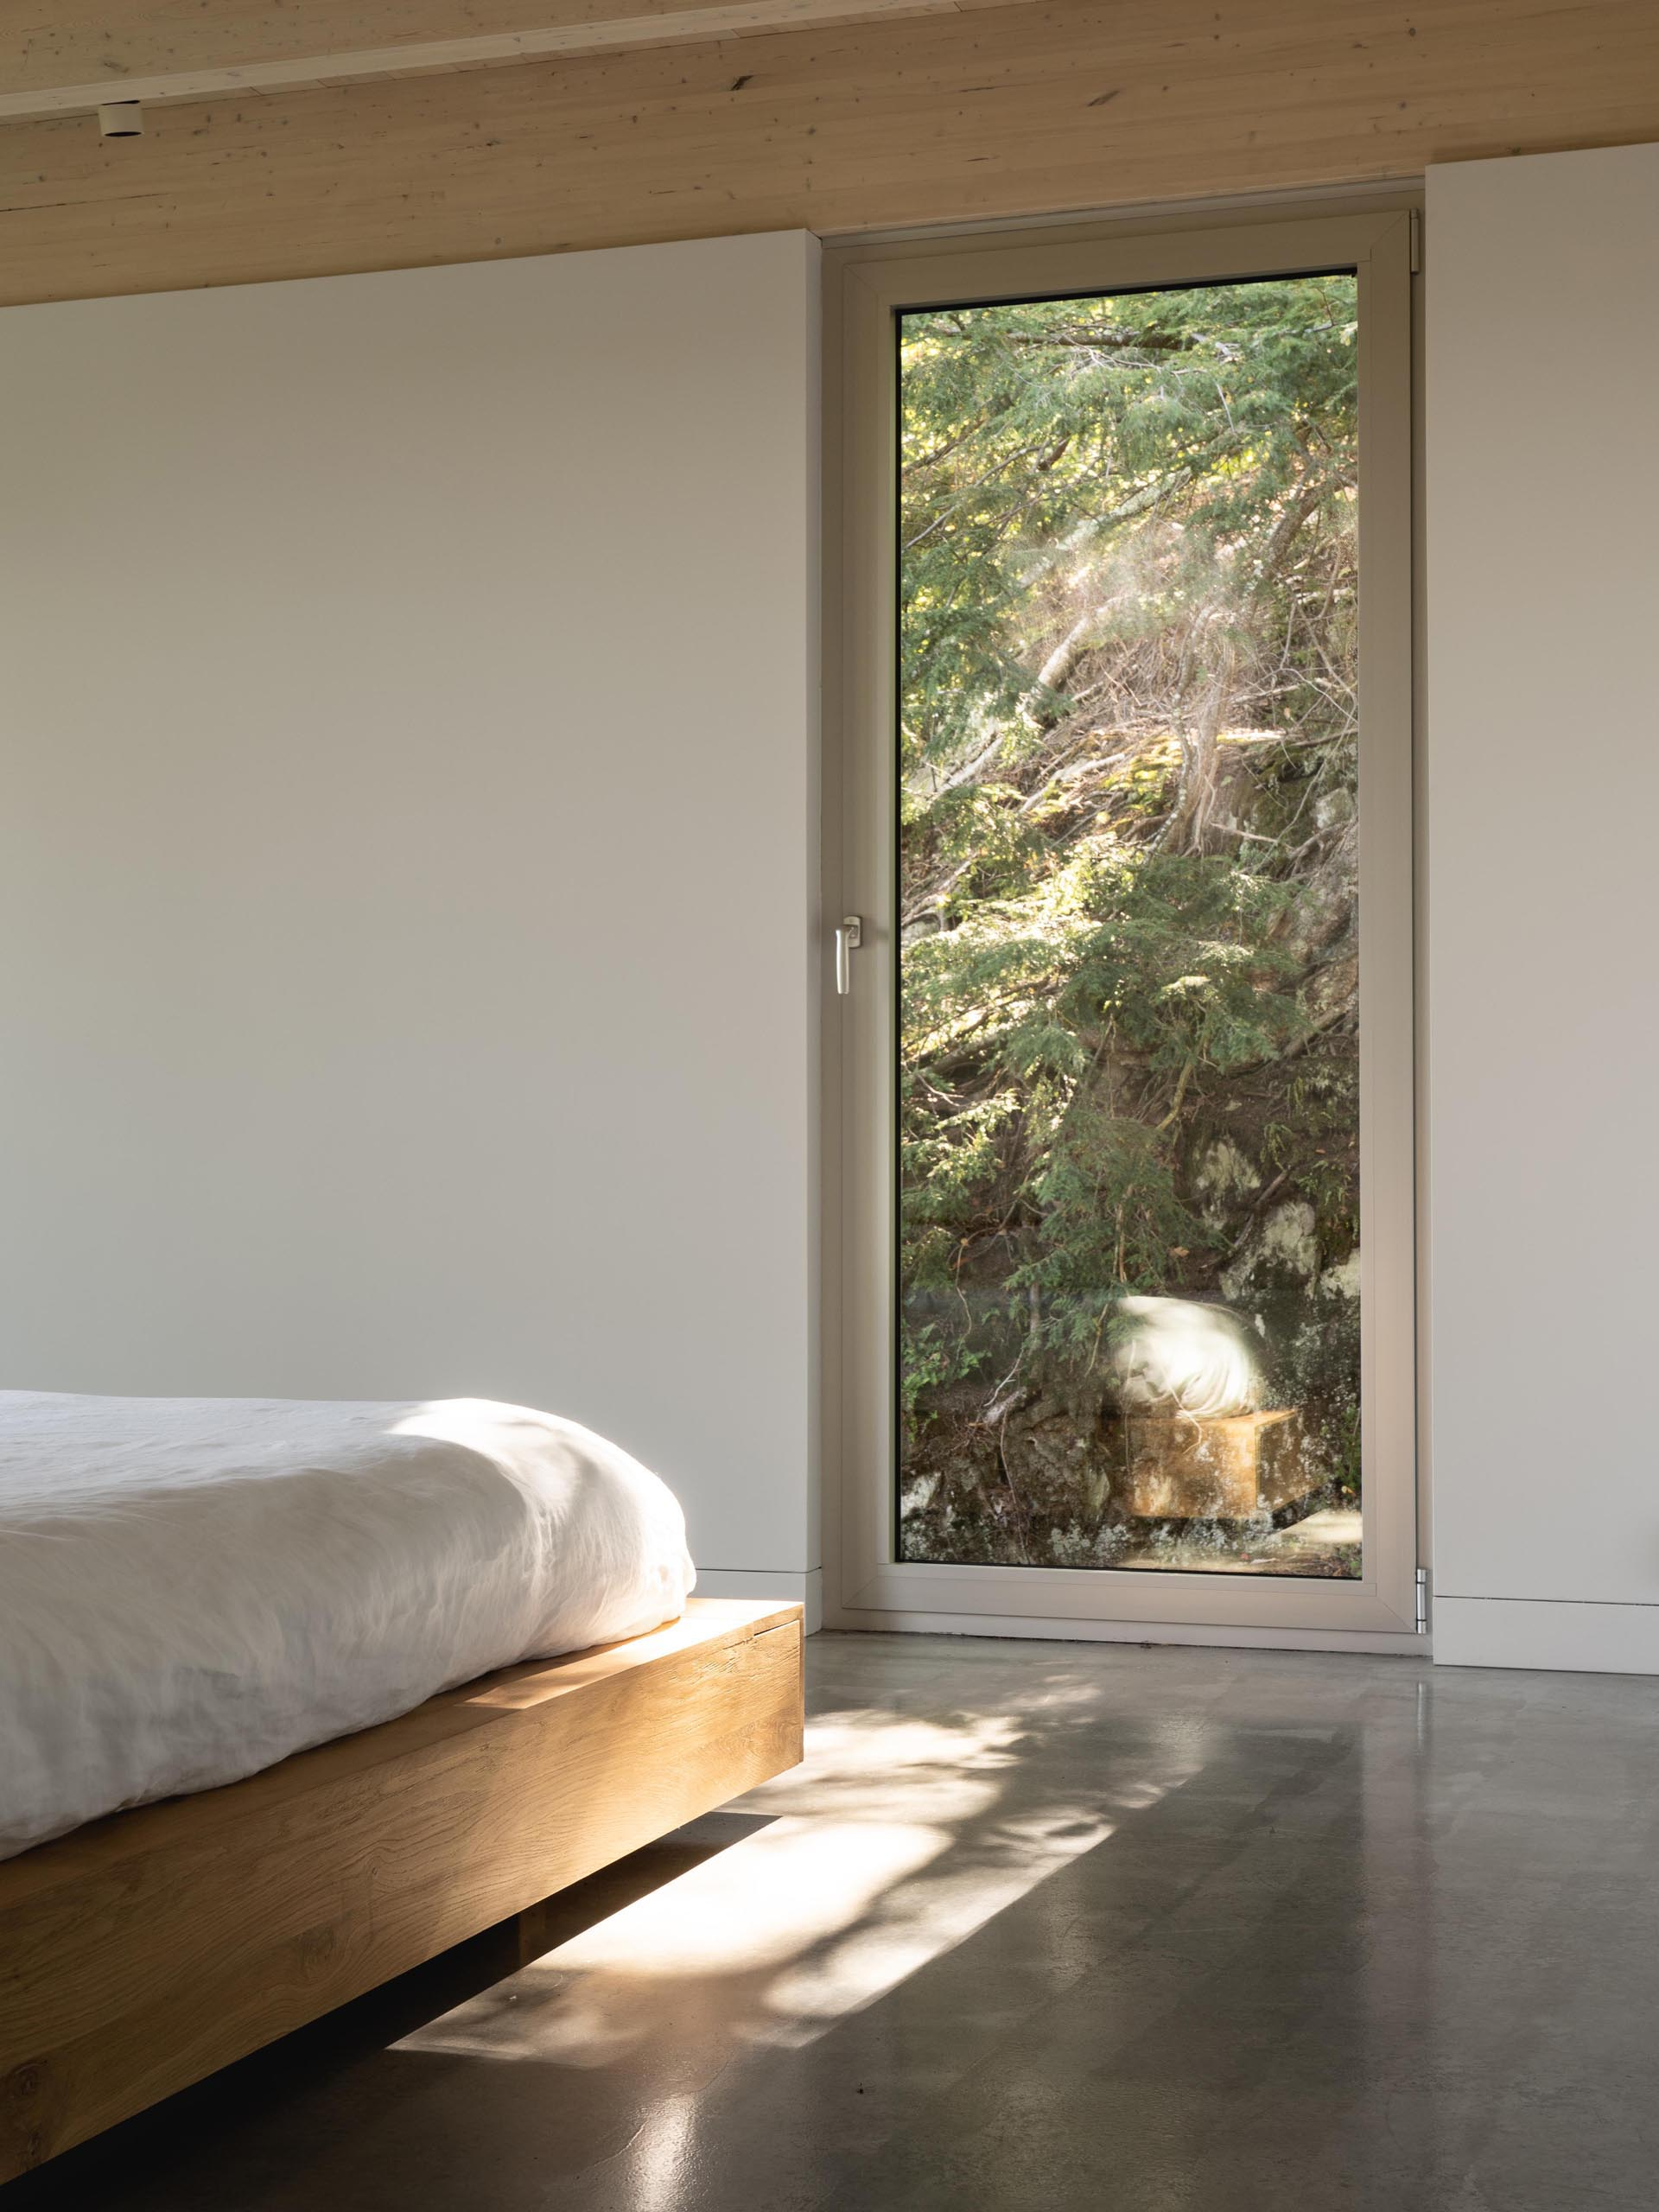 A tall window provides this modern bedroom with views of the forest.